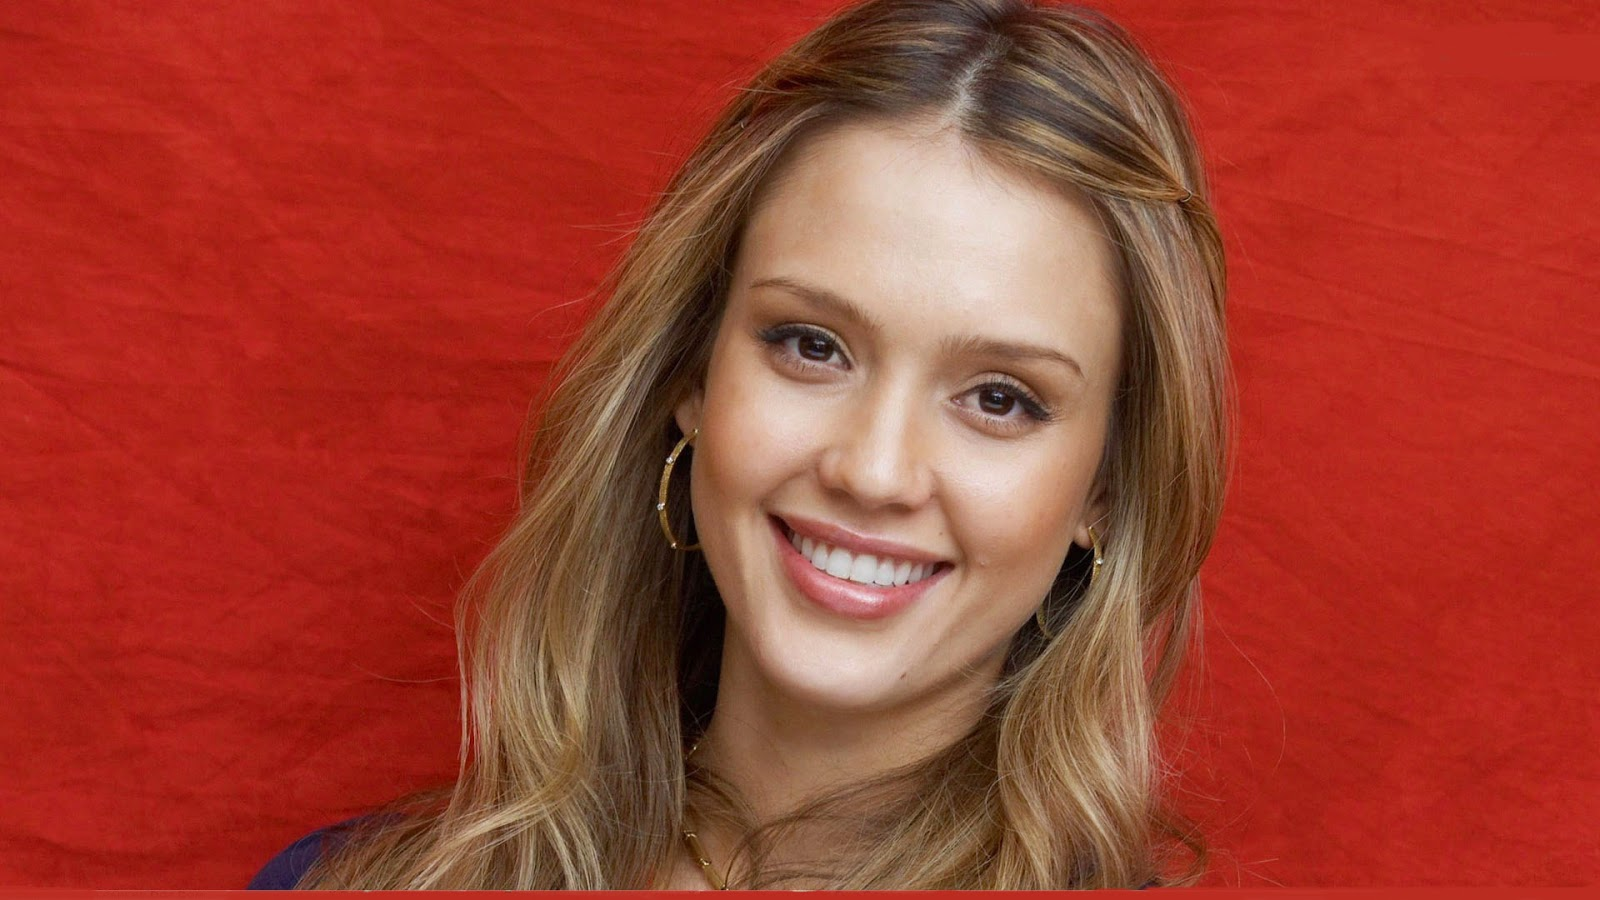 jessica alba wallpapers cute desktop faces face pic ru 2008 agony arquette rosanna wikipedia background latoro theplace2 beauty spicy